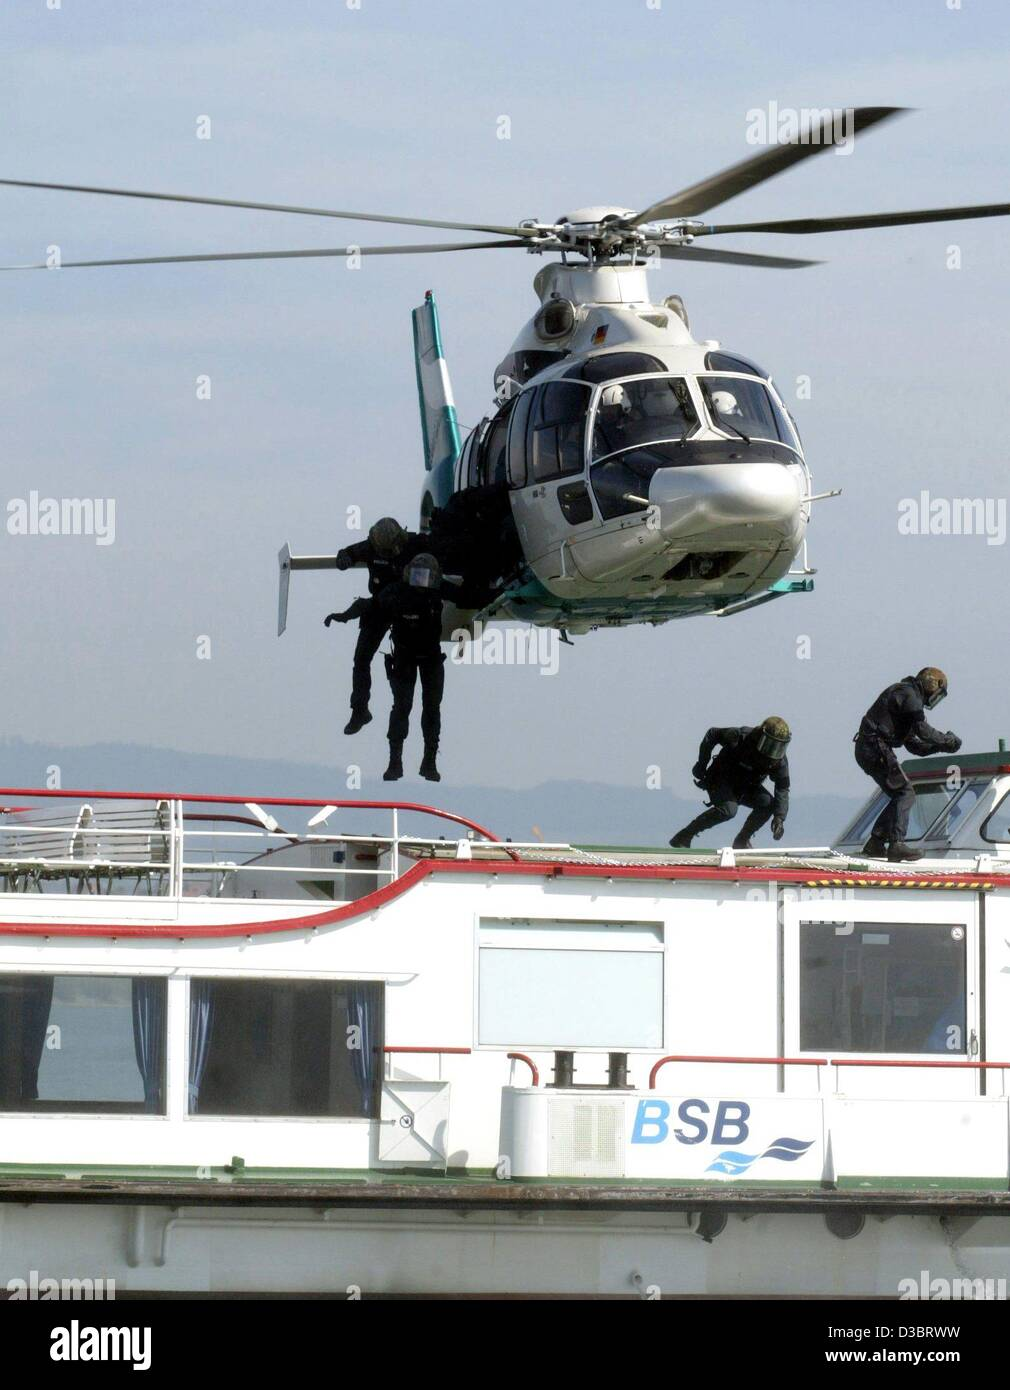 (dpa) - Policemen jump off a police helicopter EC-135 onto an excursion boat on Lake Constance, near Radolfzell, - Stock Image